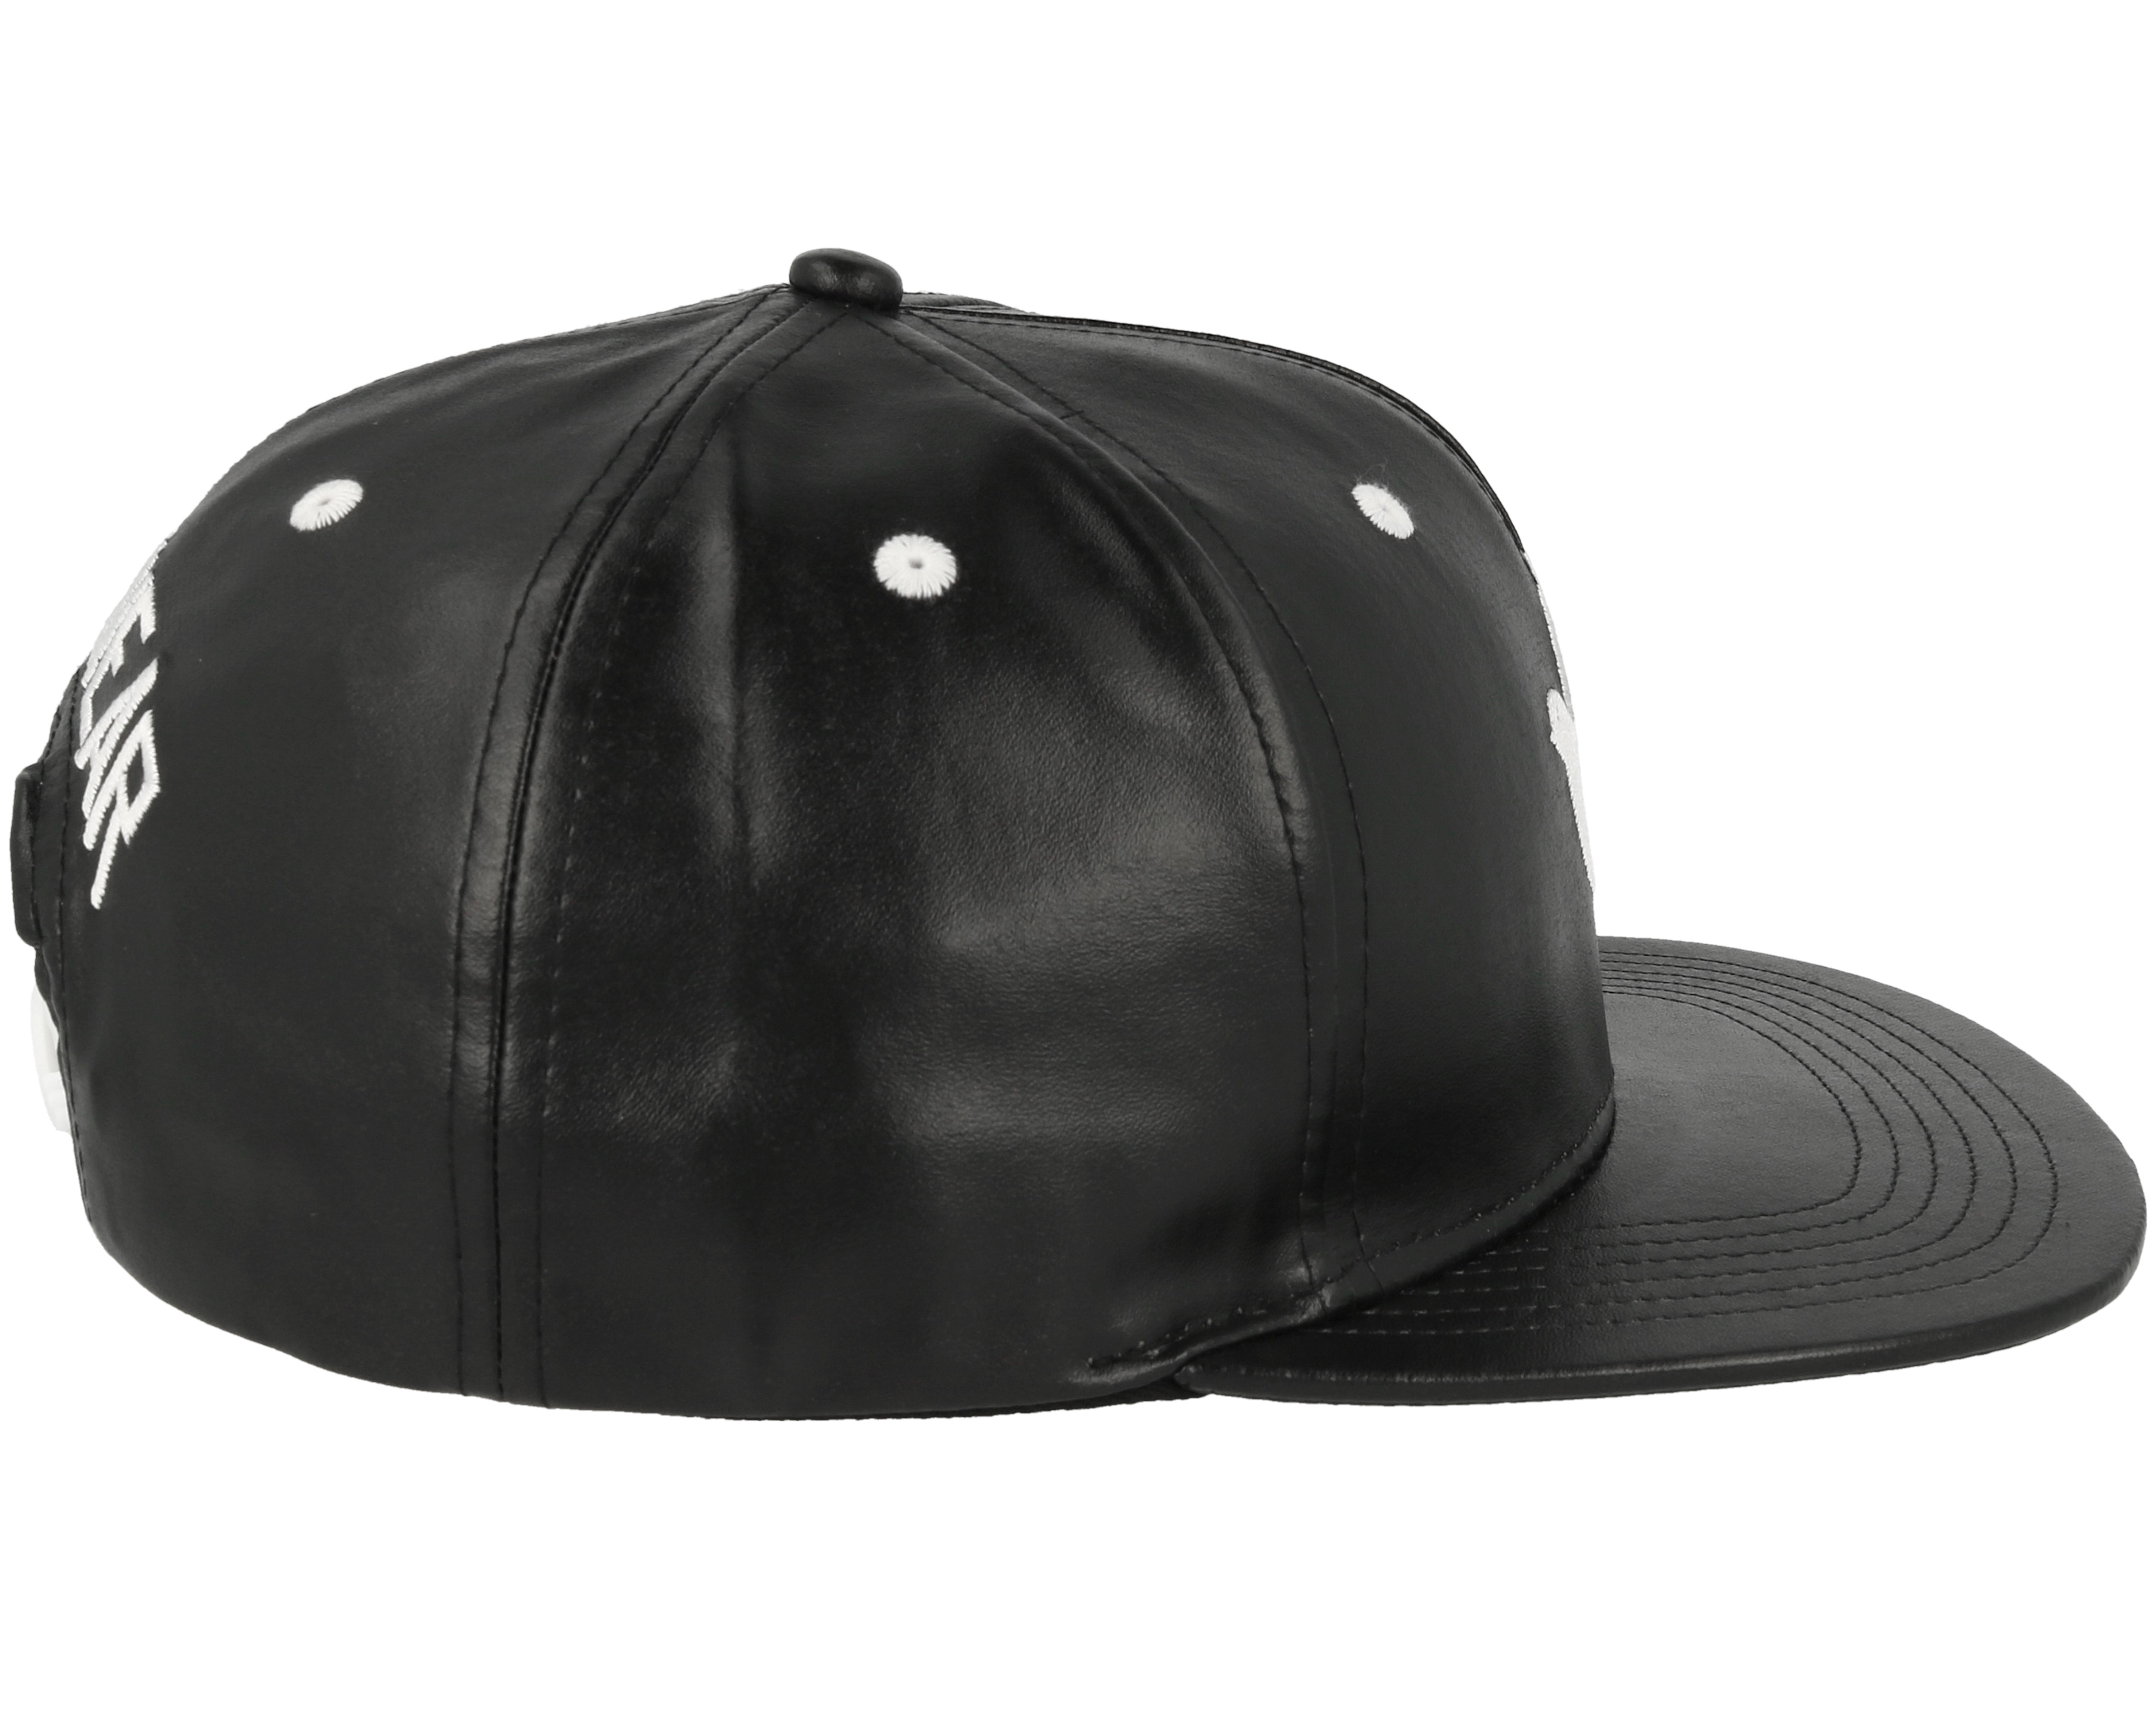 Save Us Leather Black Snapback Galagowear Caps